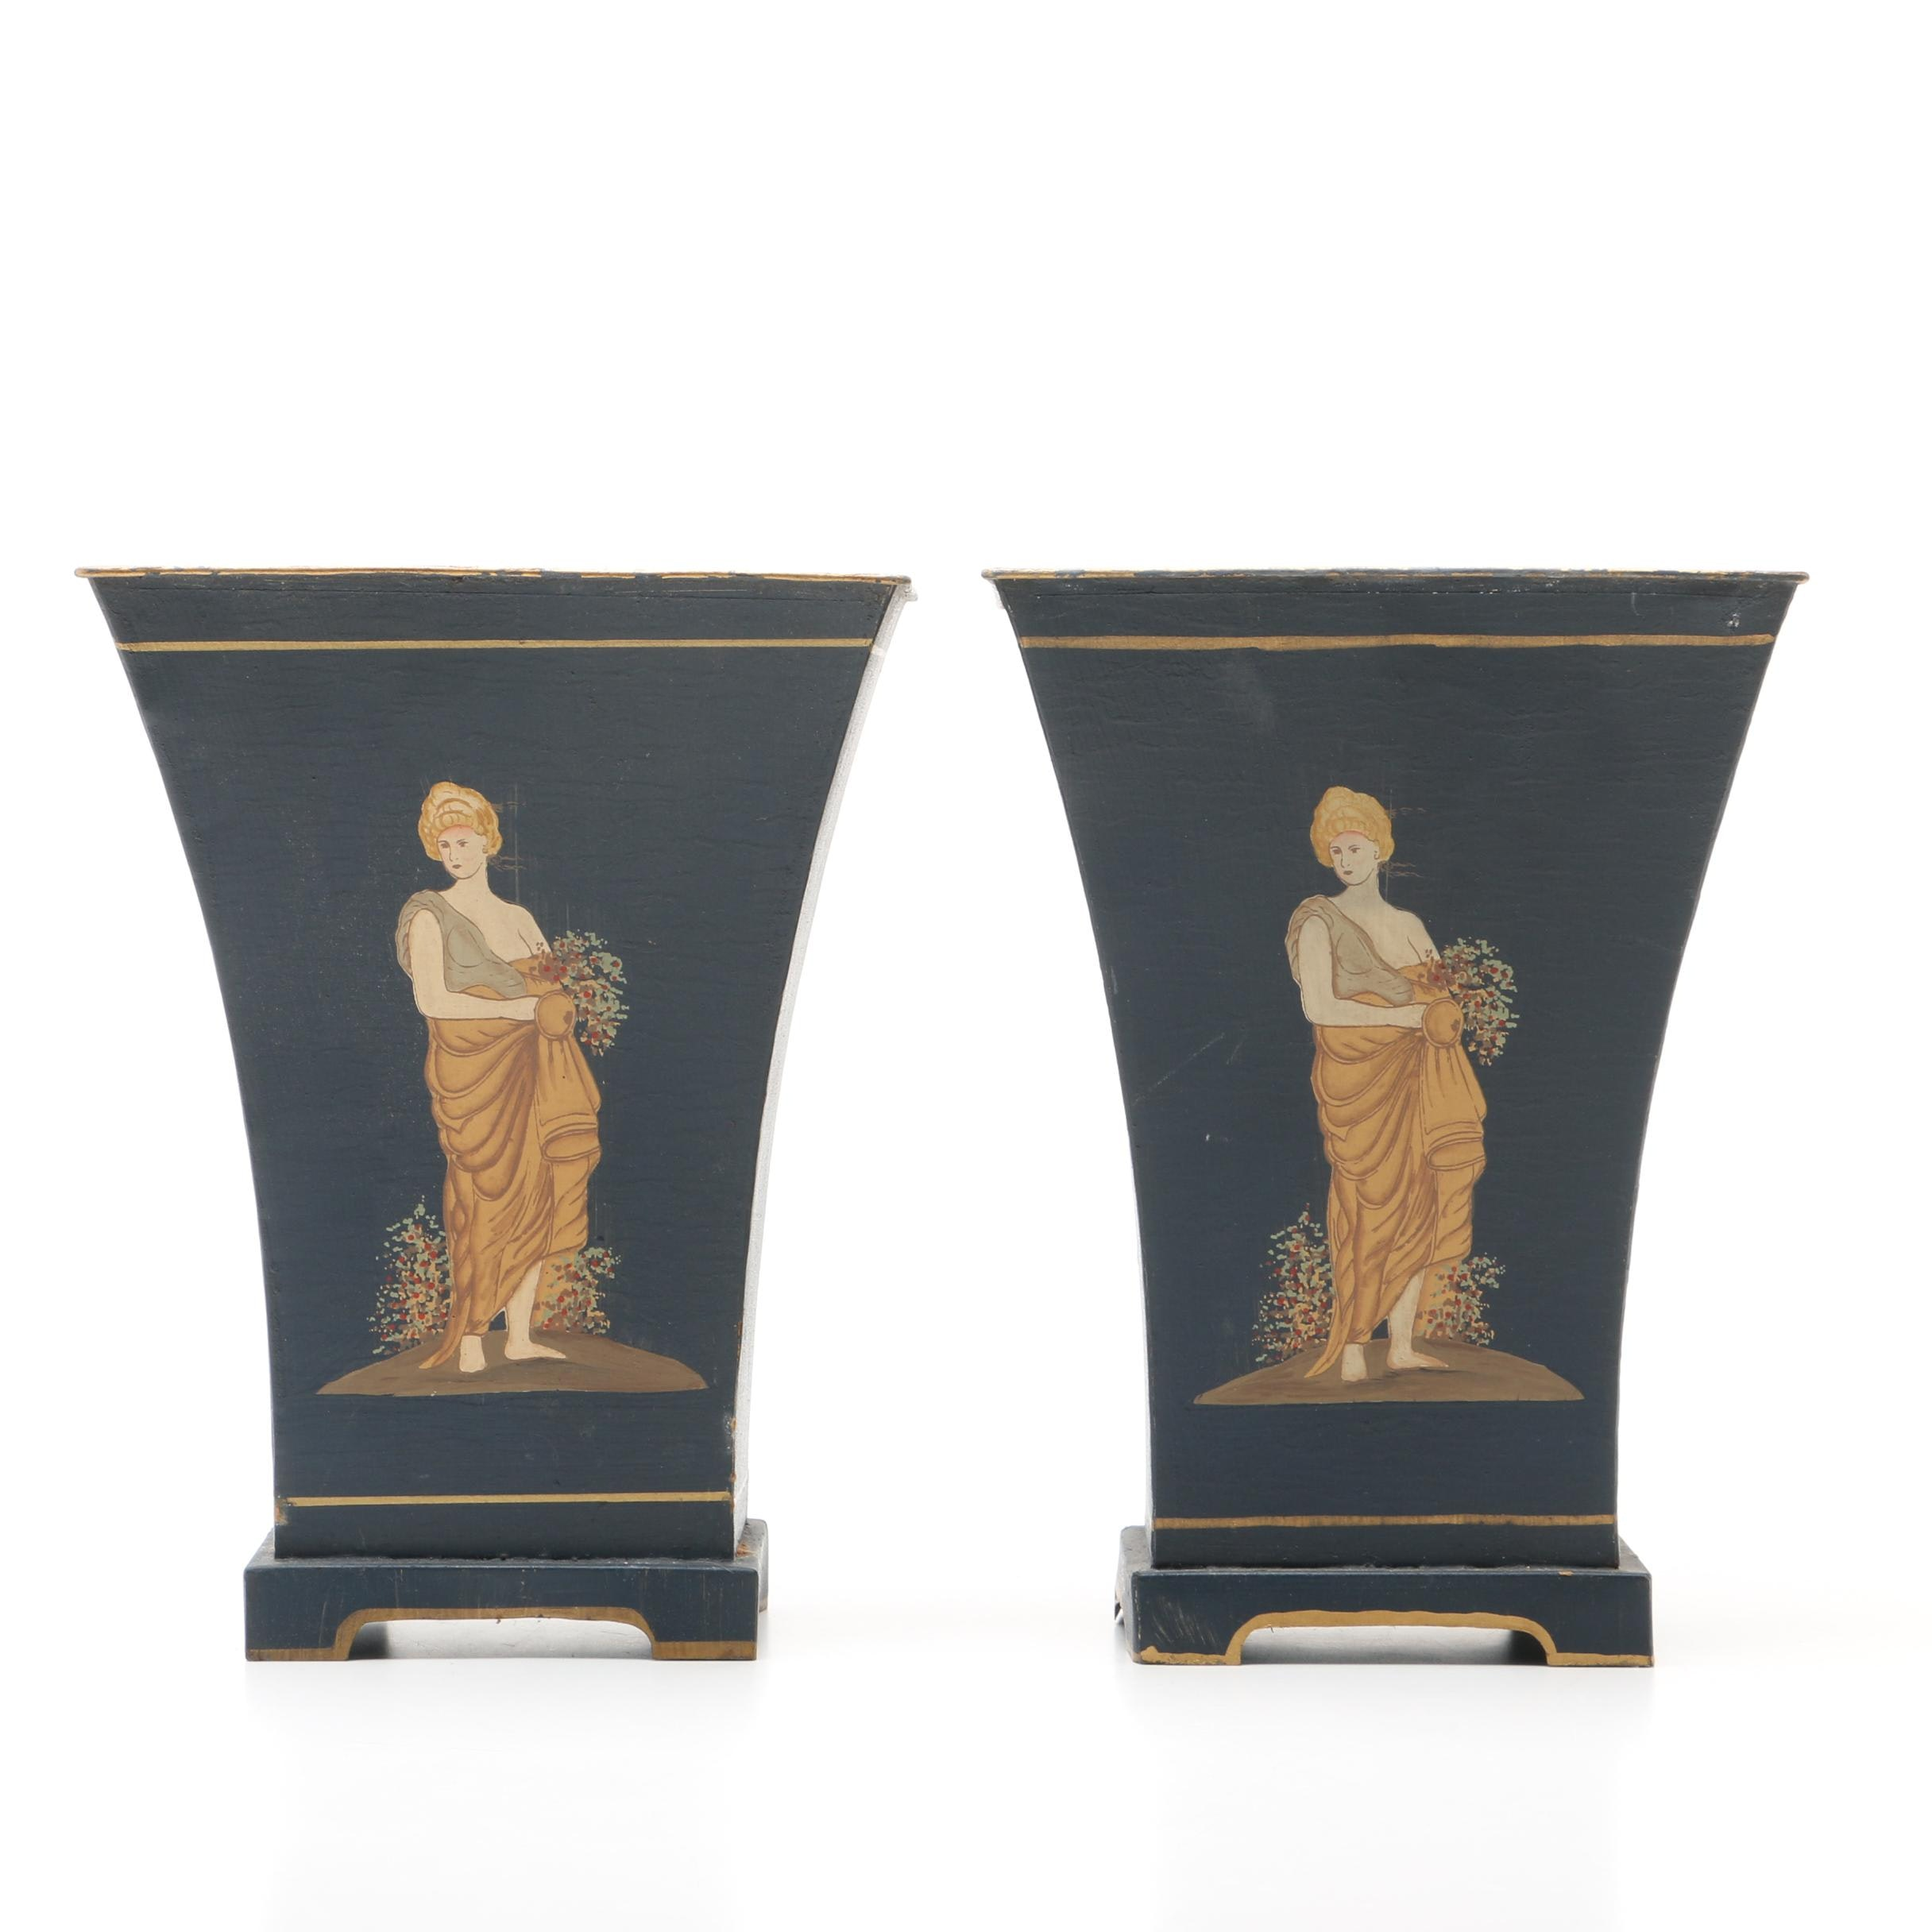 Painted Tole Metal Planters with Printed Neoclassical Motif